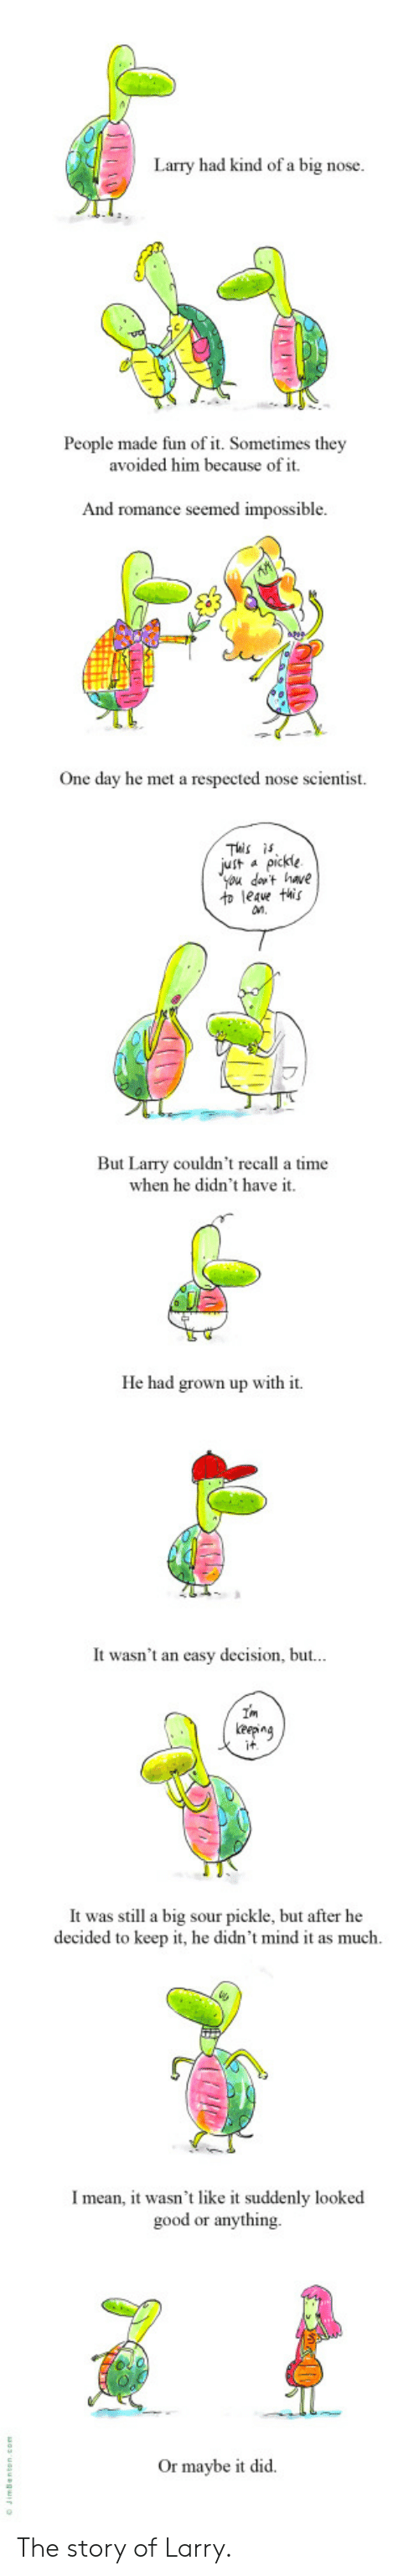 scientist: Larry had kind of a big nose.  People made fun of it. Sometimes they  avoided him because of it.  And romance seemed impossible  One day he met a respected nose scientist.  This is  Jut apickle  you dat have  to leave this  n.  But Larry couldn't recall a time  when he didn't have it.  He had grown up with it  It wasn't an easy decision, but...  Im  eepng  it  It was still a big sour pickle, but after he  decided to keep it, he didn't mind it as much  Imean, it wasn't like it suddenly looked  good or anything  Or maybe it did The story of Larry.